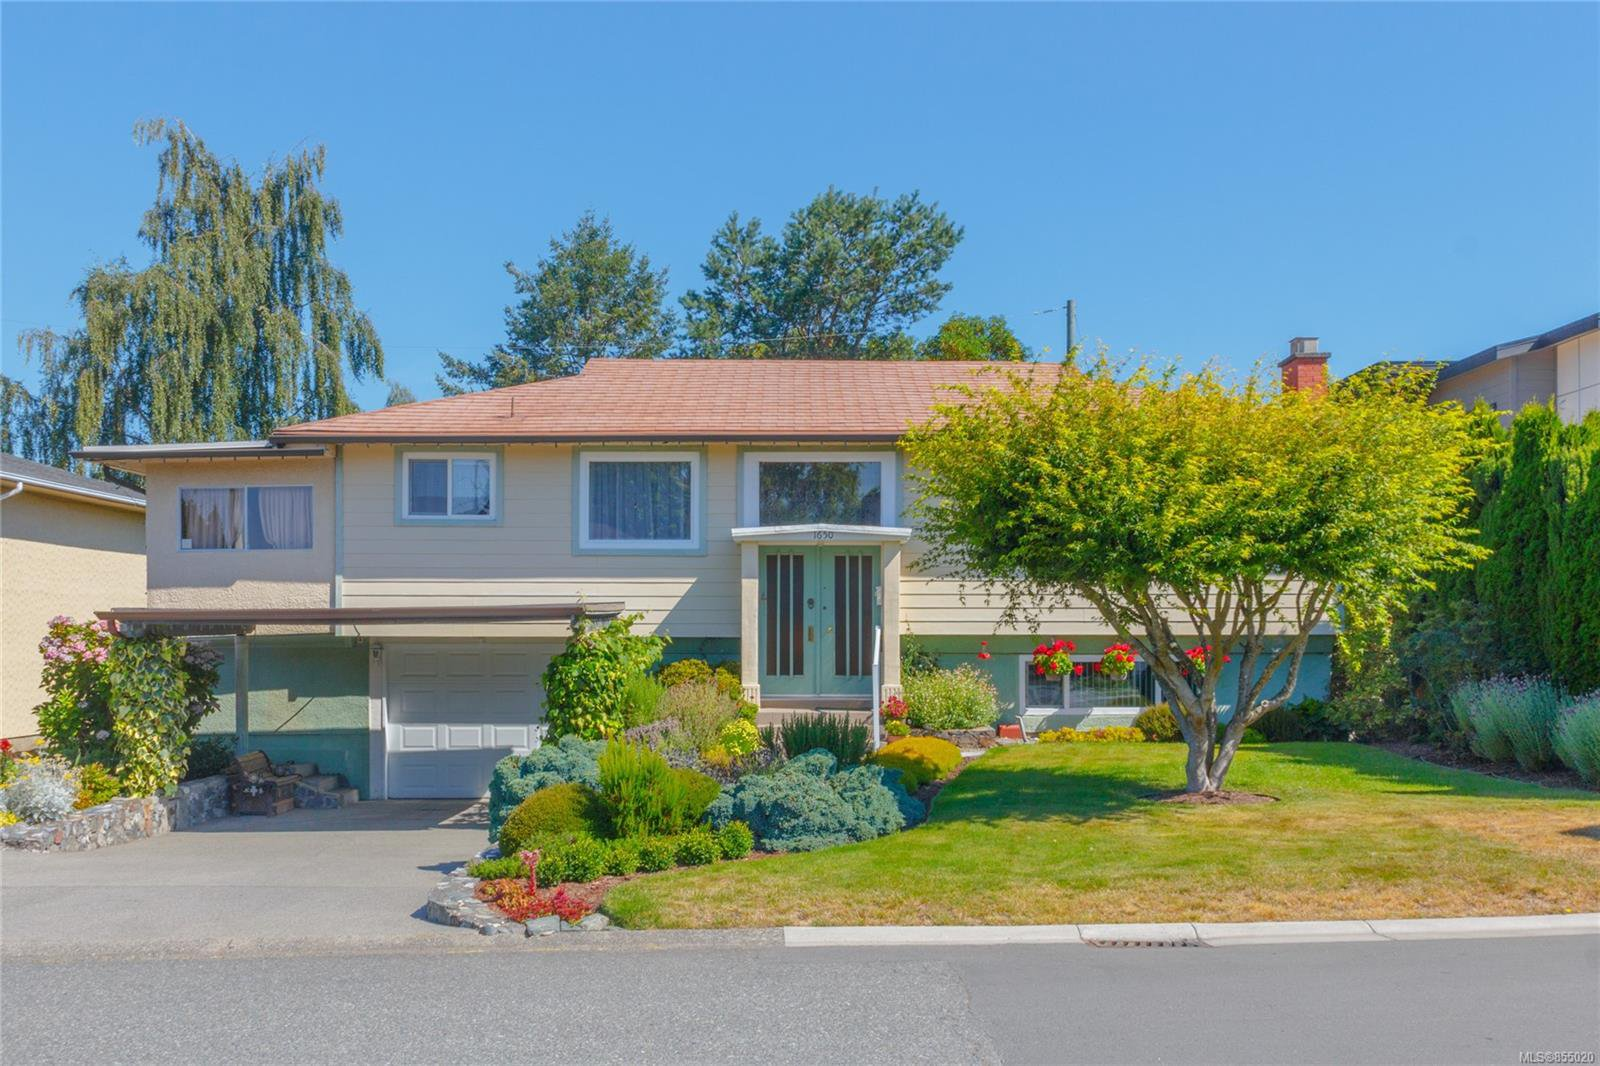 Main Photo: 1650 Alderwood St in : SE Lambrick Park House for sale (Saanich East)  : MLS®# 855020